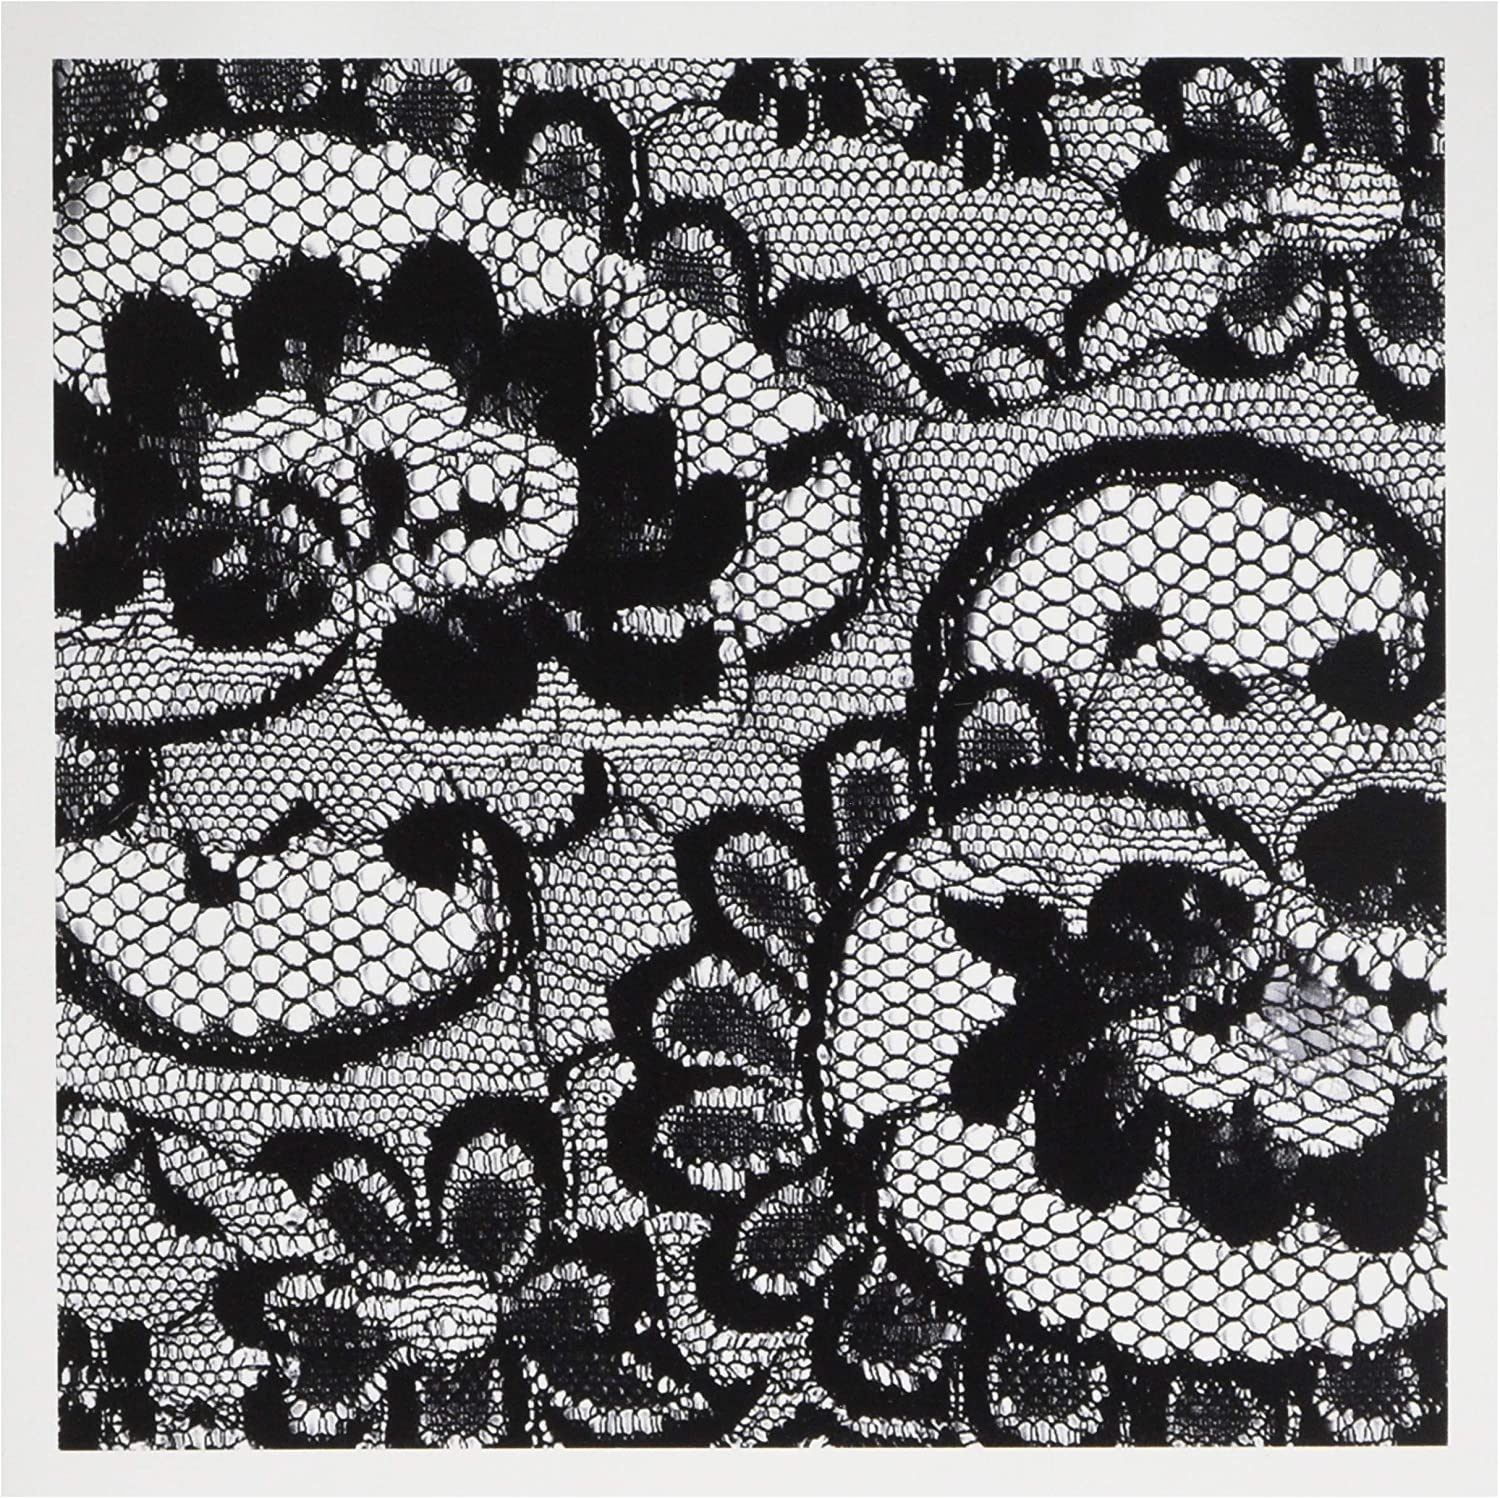 3drose Sassy Black And White Lace Print Perfect For Bachelorette Or Lingerie Parties Greeting Cards 6 By 6 Inches Set Of 12 Gc 26419 2 Amazon Co Uk Office Products